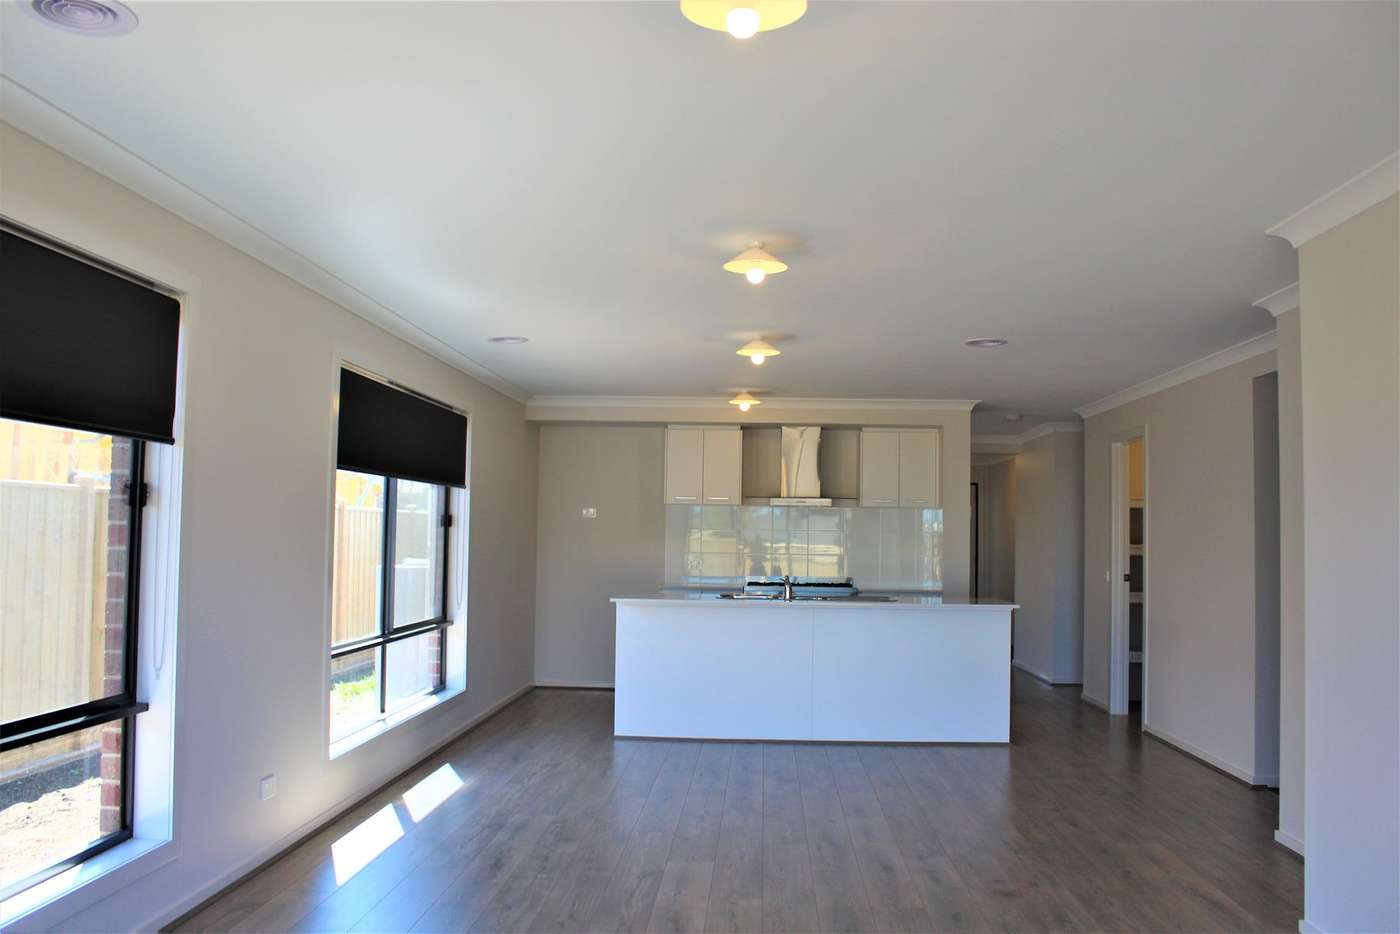 Sixth view of Homely house listing, 6 Kakoura Street, Drouin VIC 3818